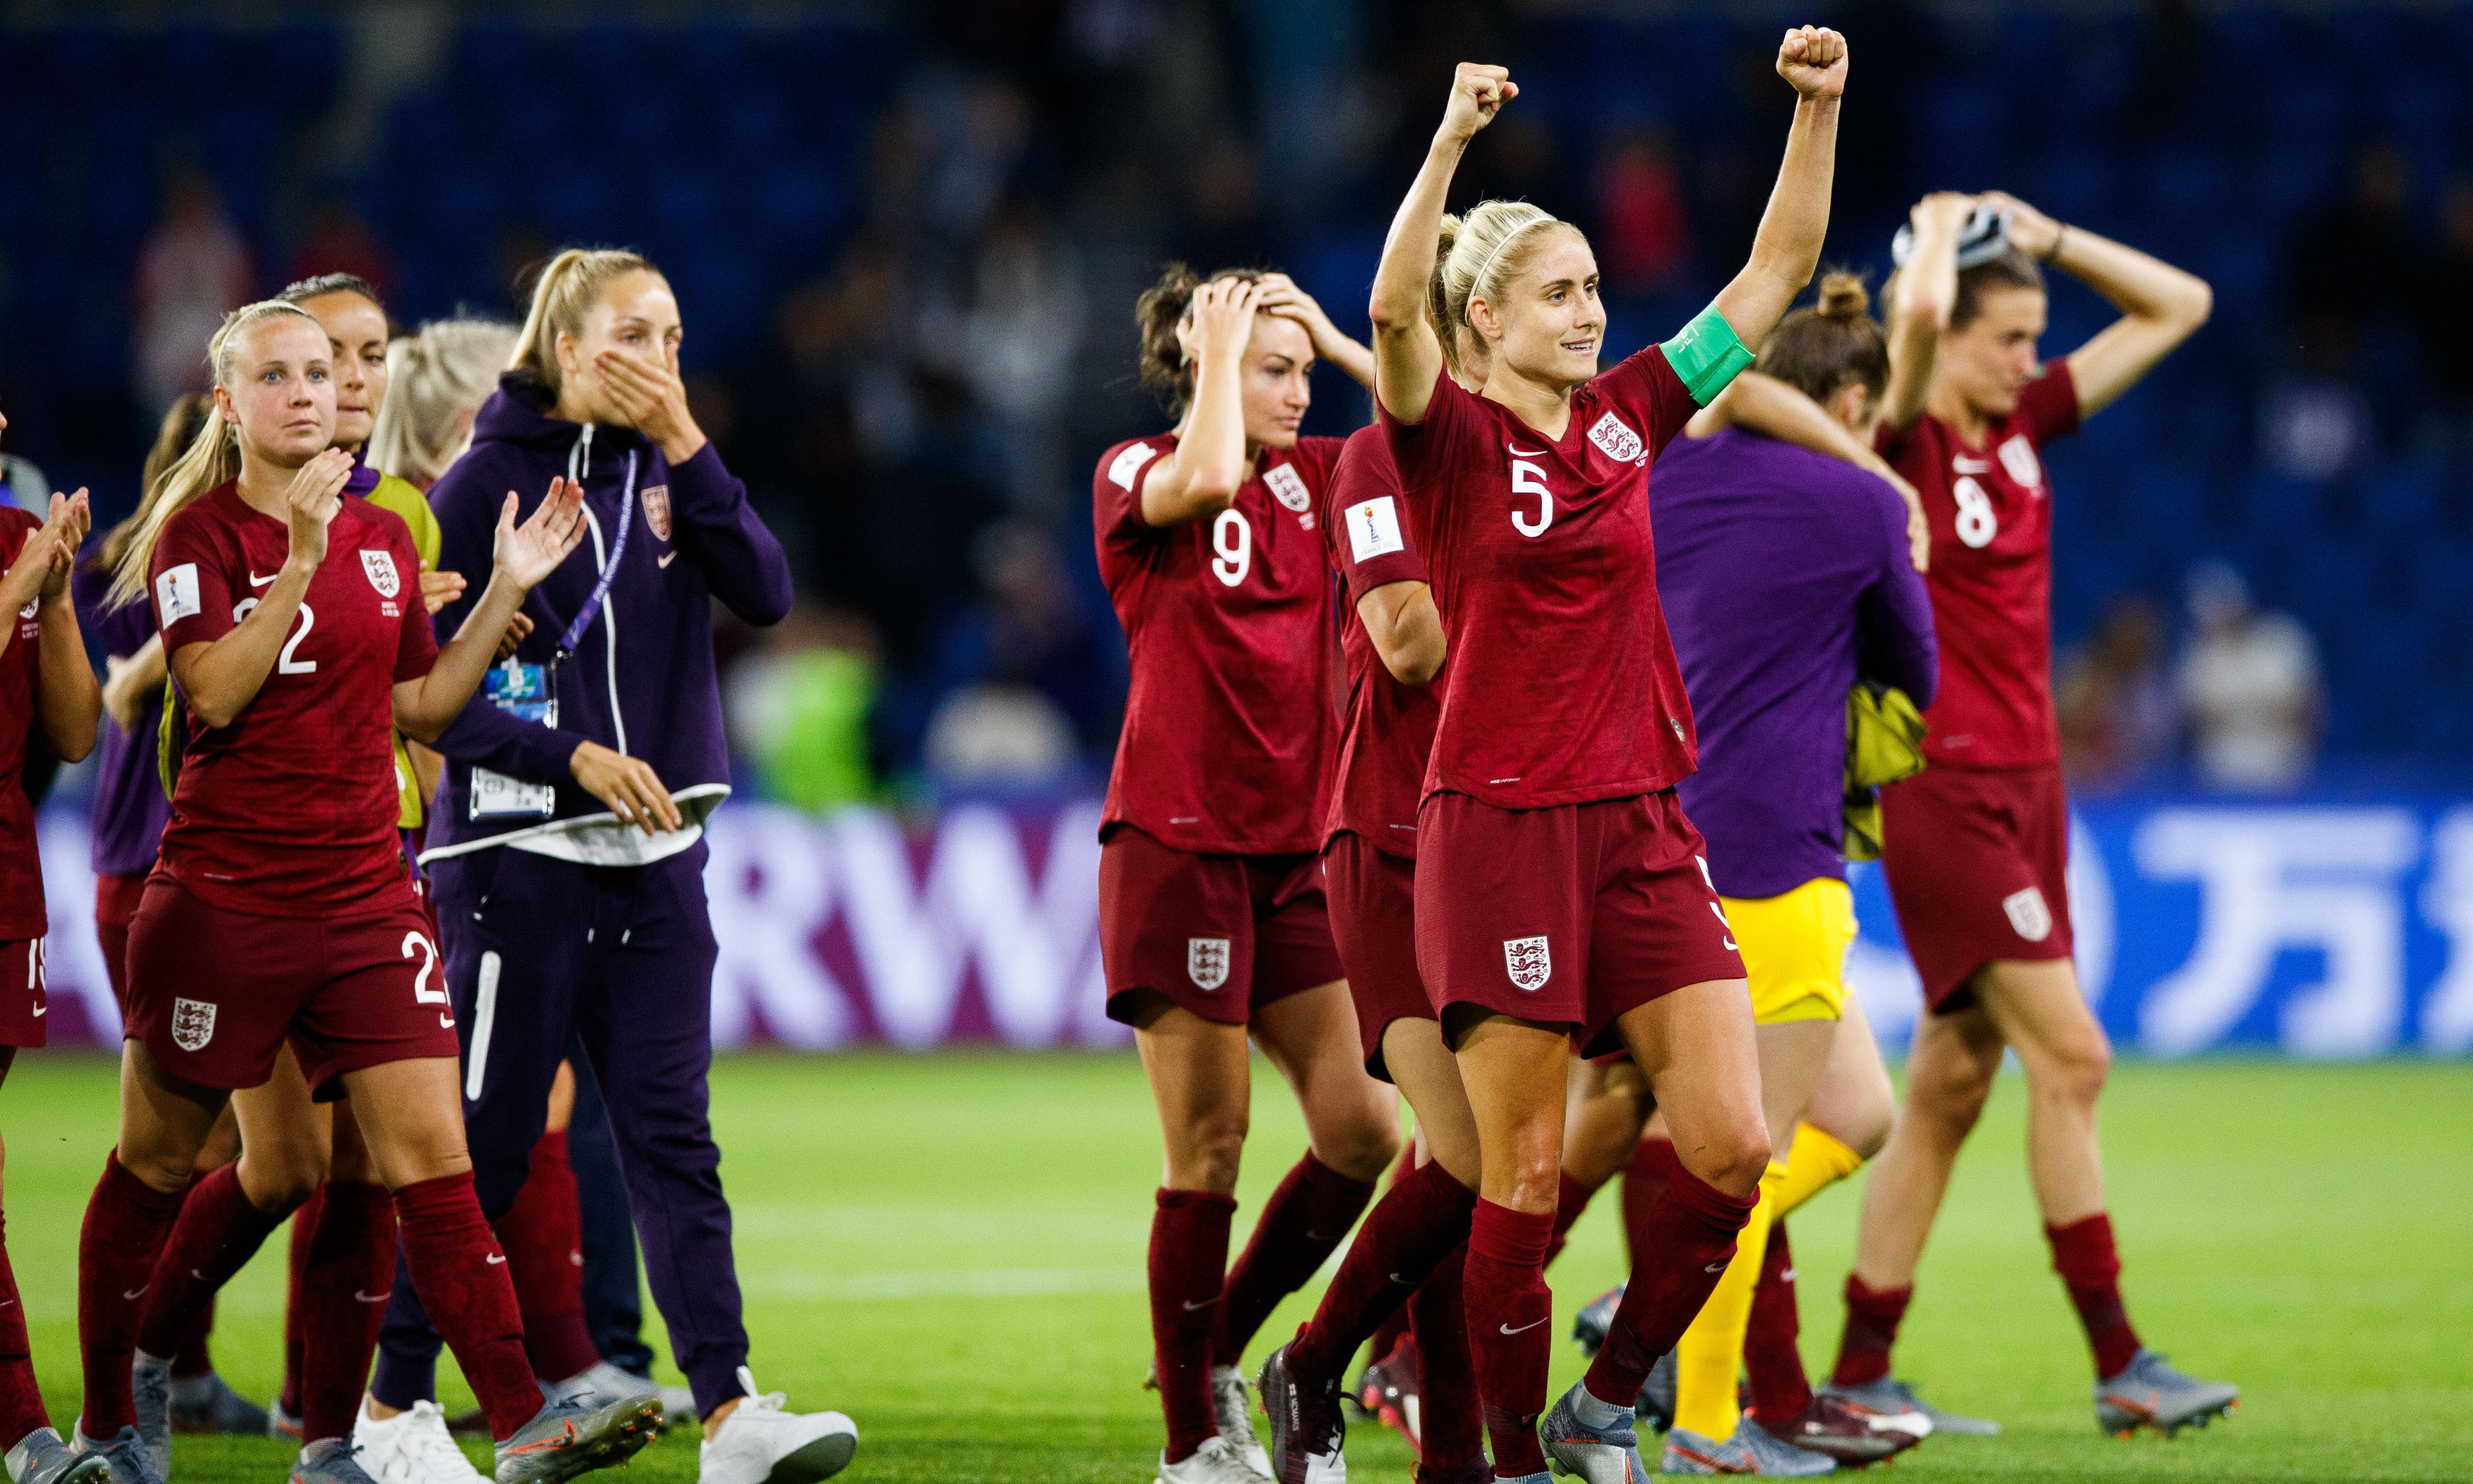 England win shows they have the spark and fight to go far at World Cup